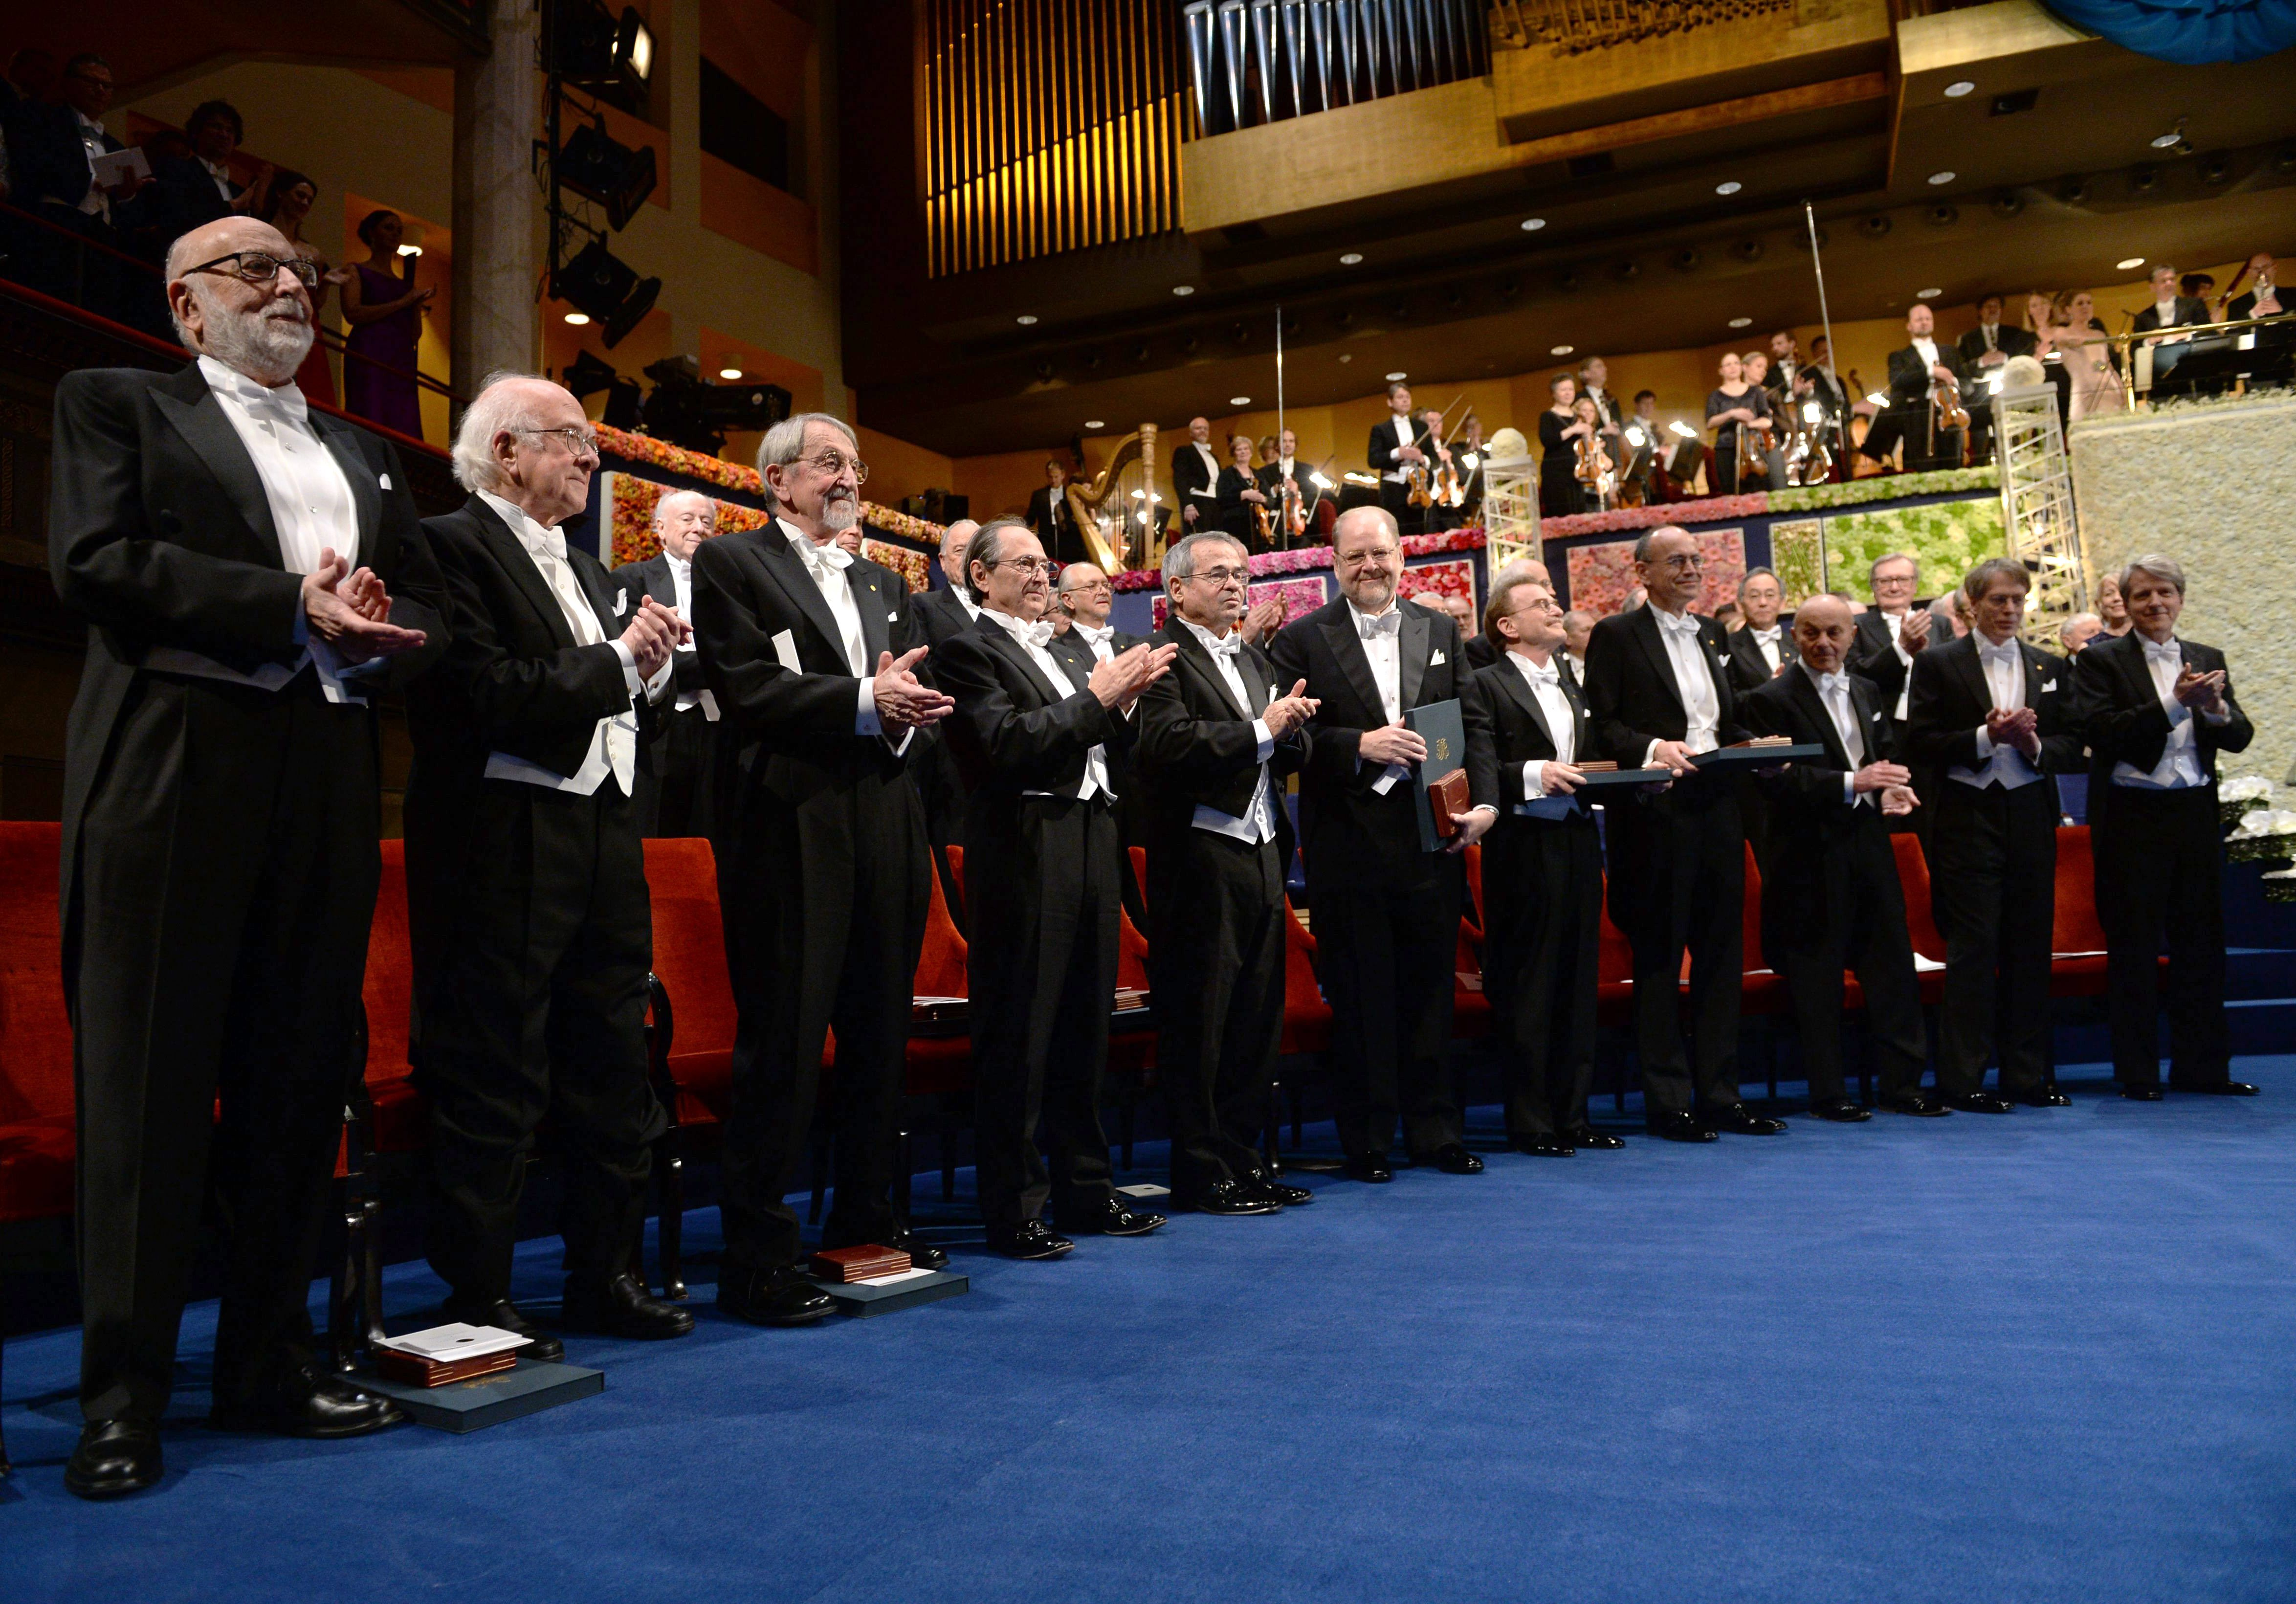 Should all Nobel Prizes be canceled for a year?